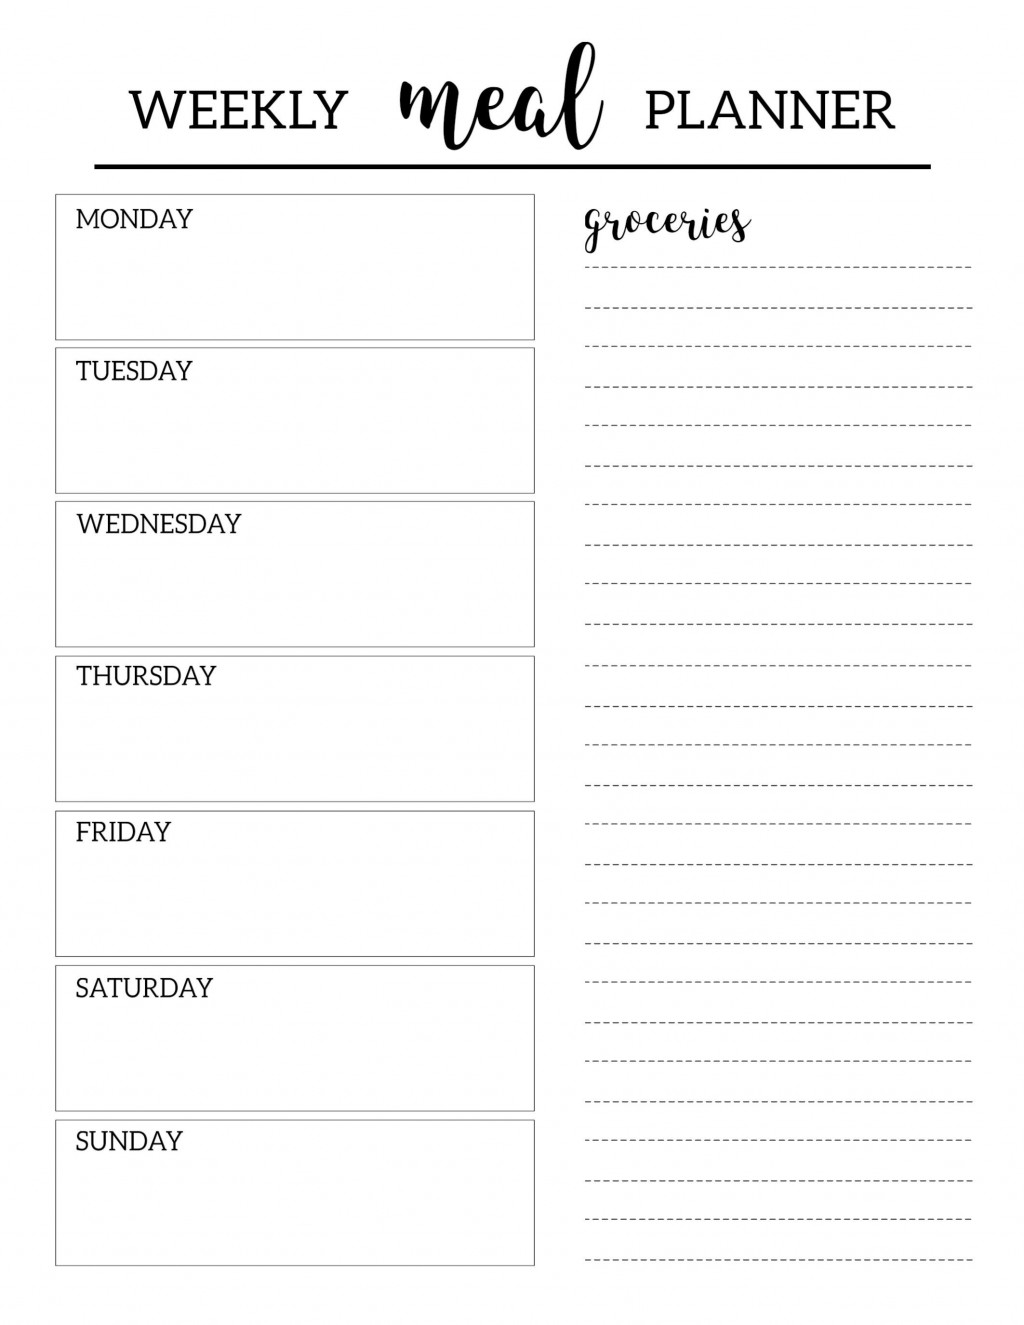 000 Surprising Free Meal Plan Template Design  Templates Easy Keto Printable Planner For Weight LosLarge